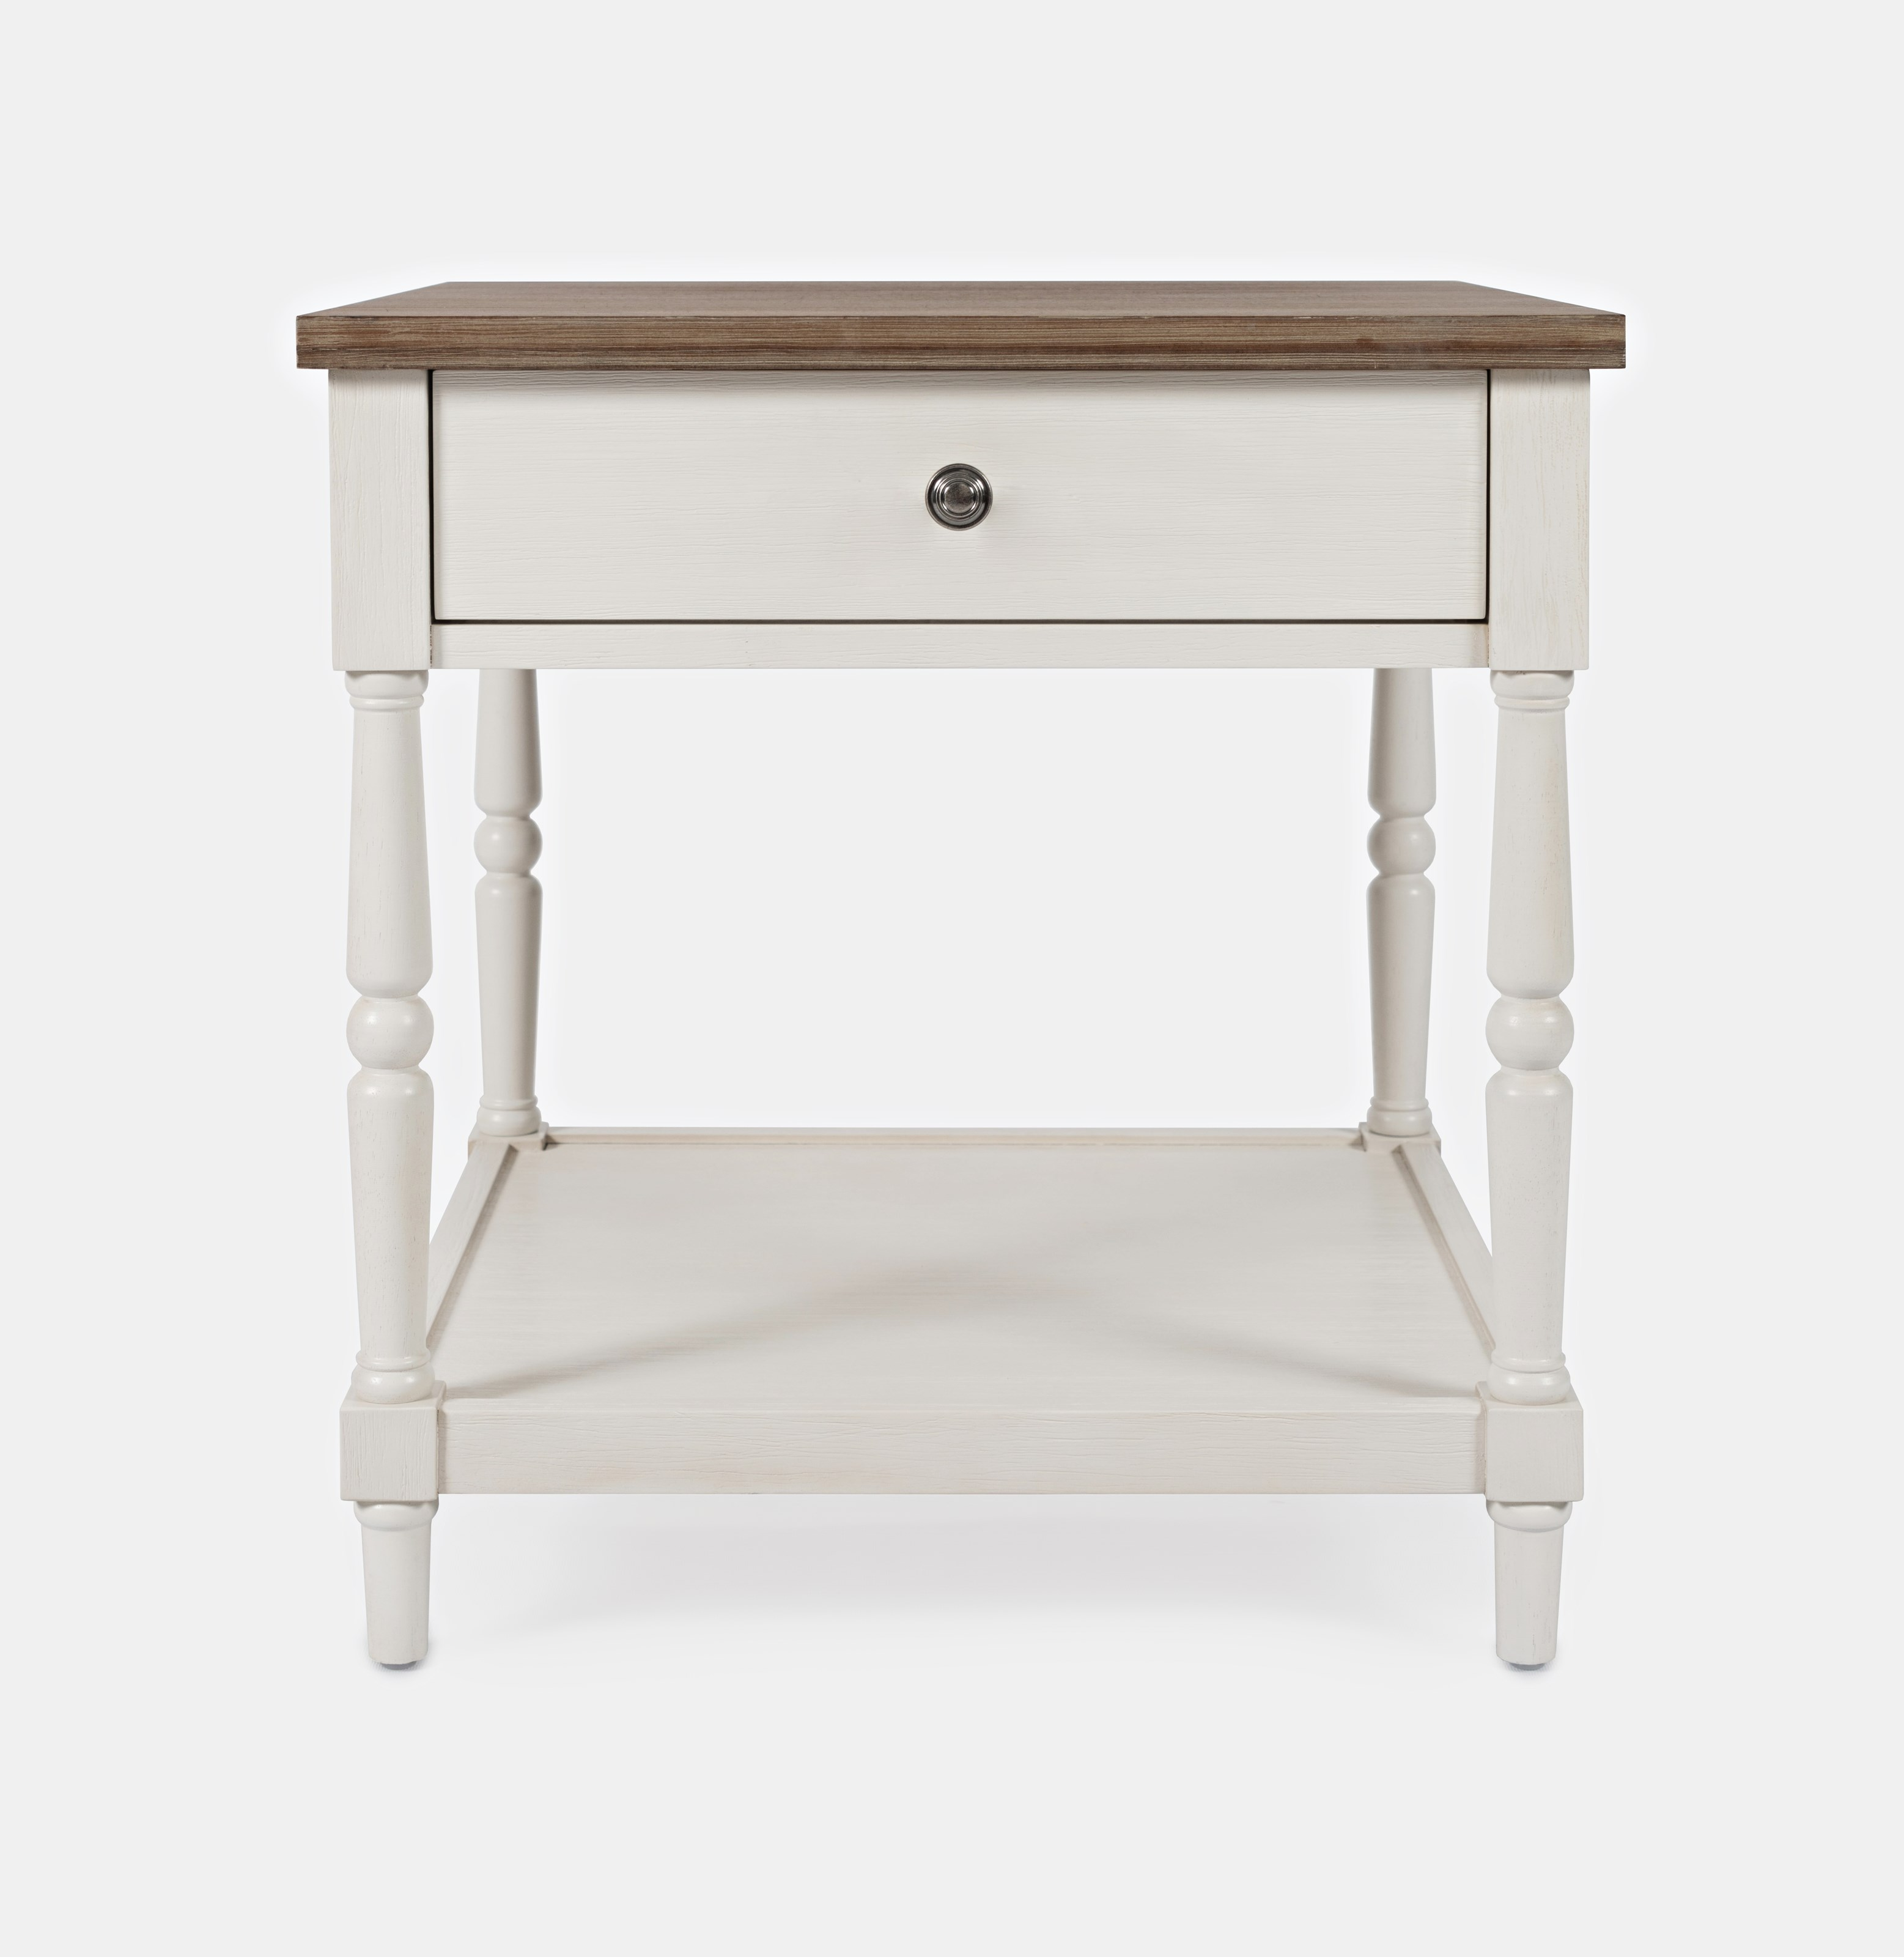 Grafton Farms End Table with Drawer by Jofran at Turk Furniture